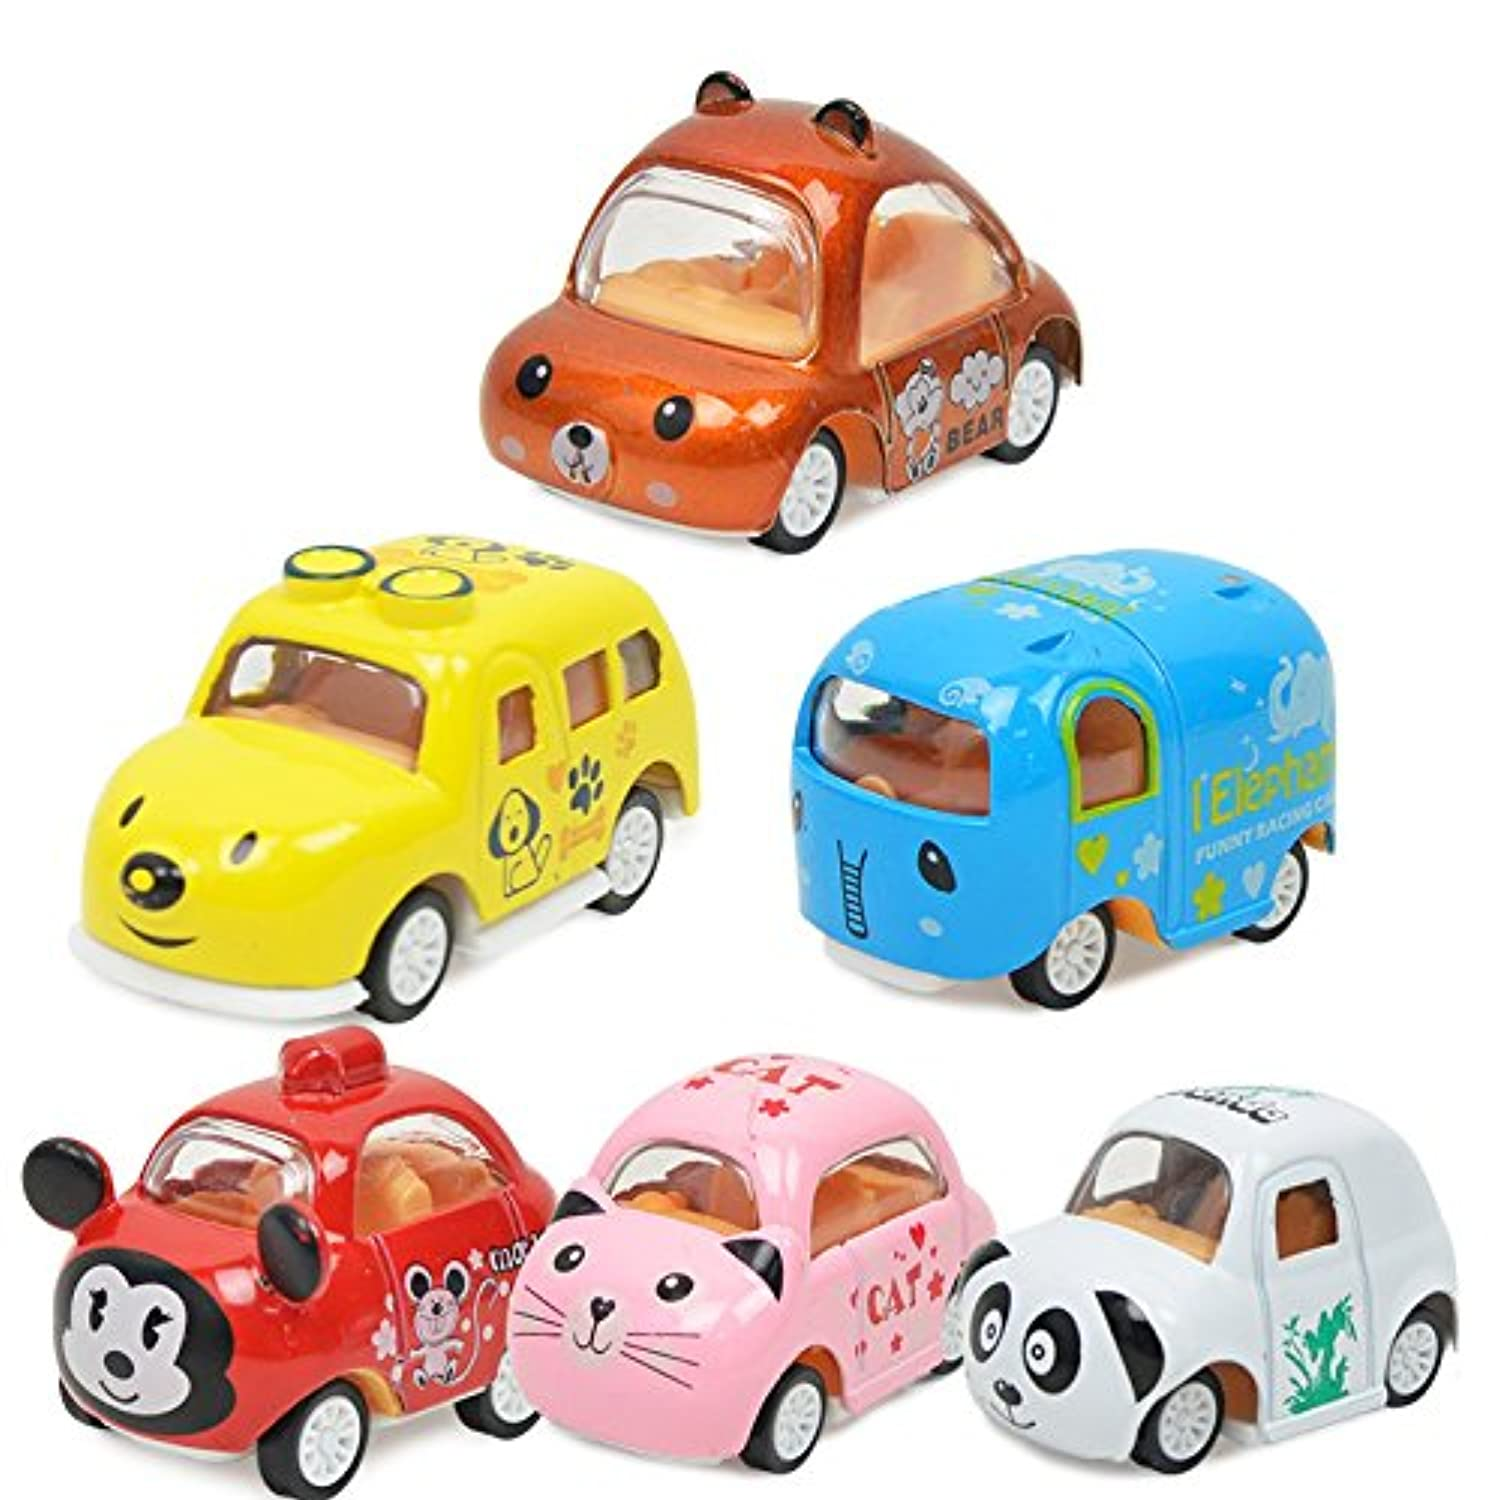 xieccx Pull Back Cars Toy – 6 Pack Assorted Mini Pull Back Cars、合金ダイキャストVehicles Playset、カートン動物MiniトラックToy, Pull Back and Go car toy play set for kids